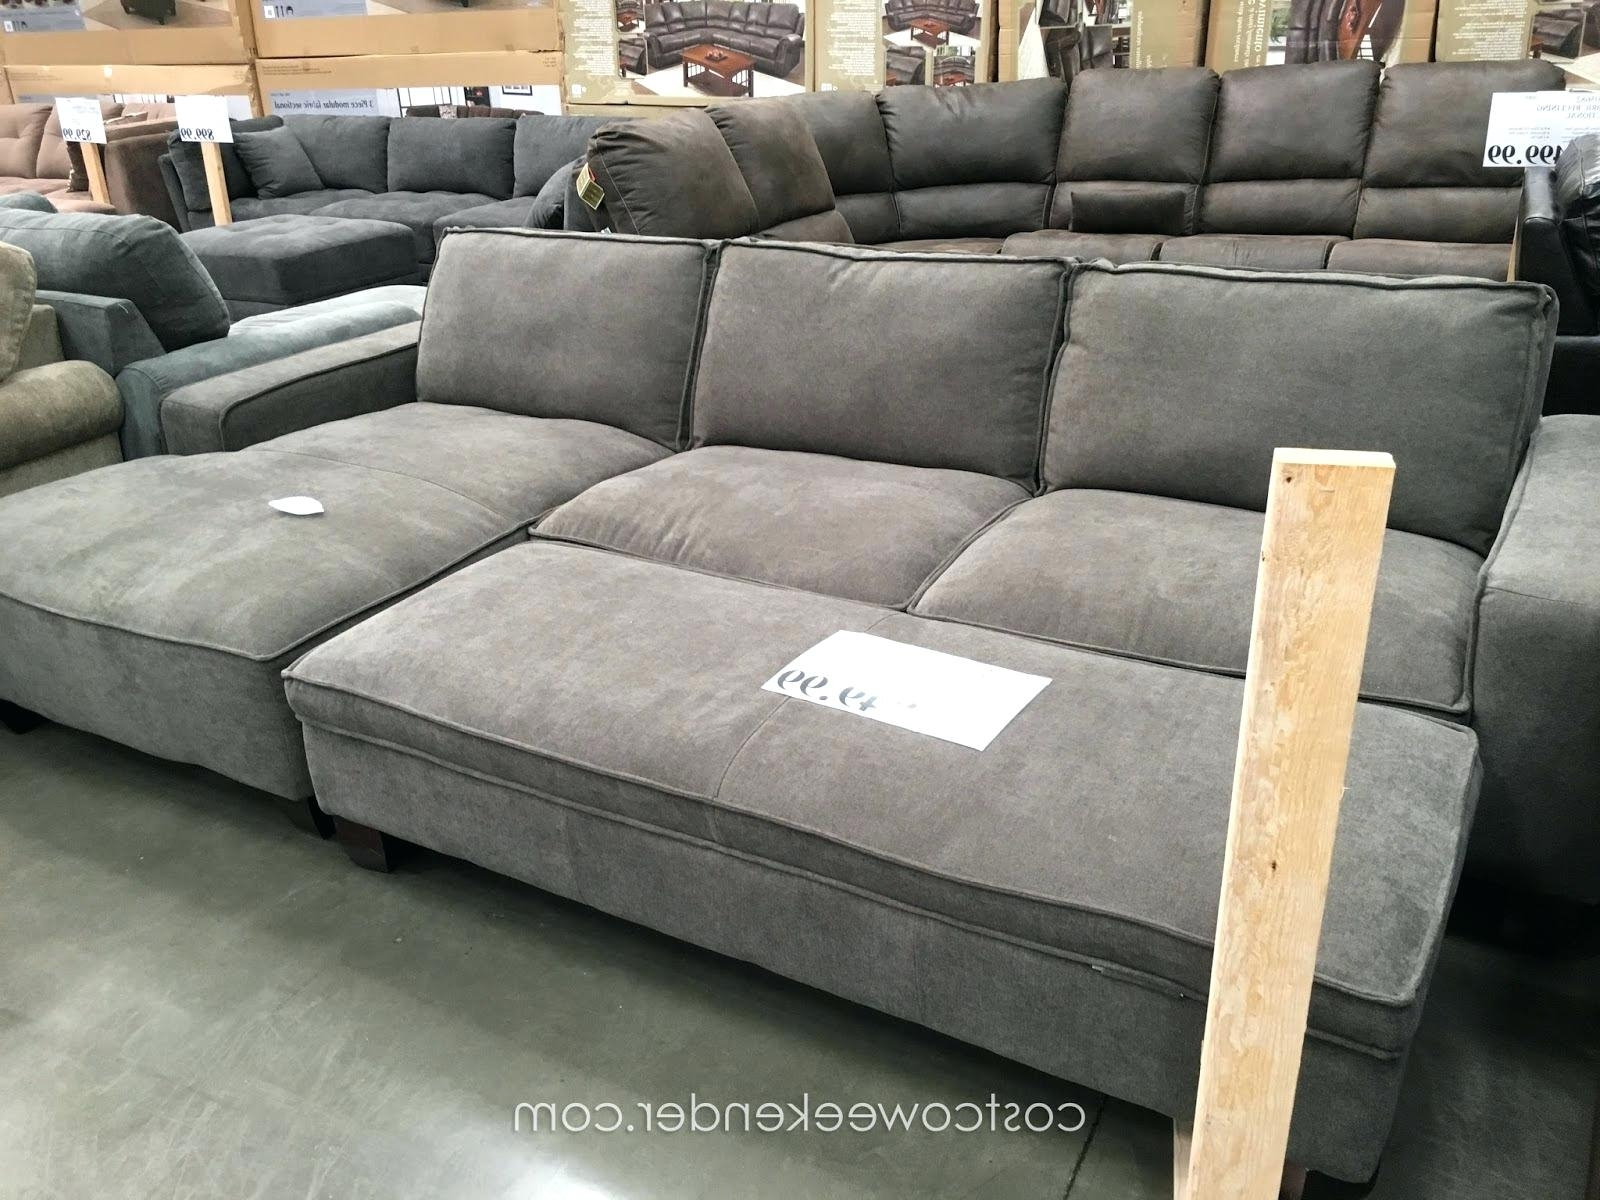 Latest Articles With Gray Sectional Sofa Chaise Lounge Tag 3Pc Pertaining To Sectional Sofas With Chaise And Ottoman (View 5 of 15)